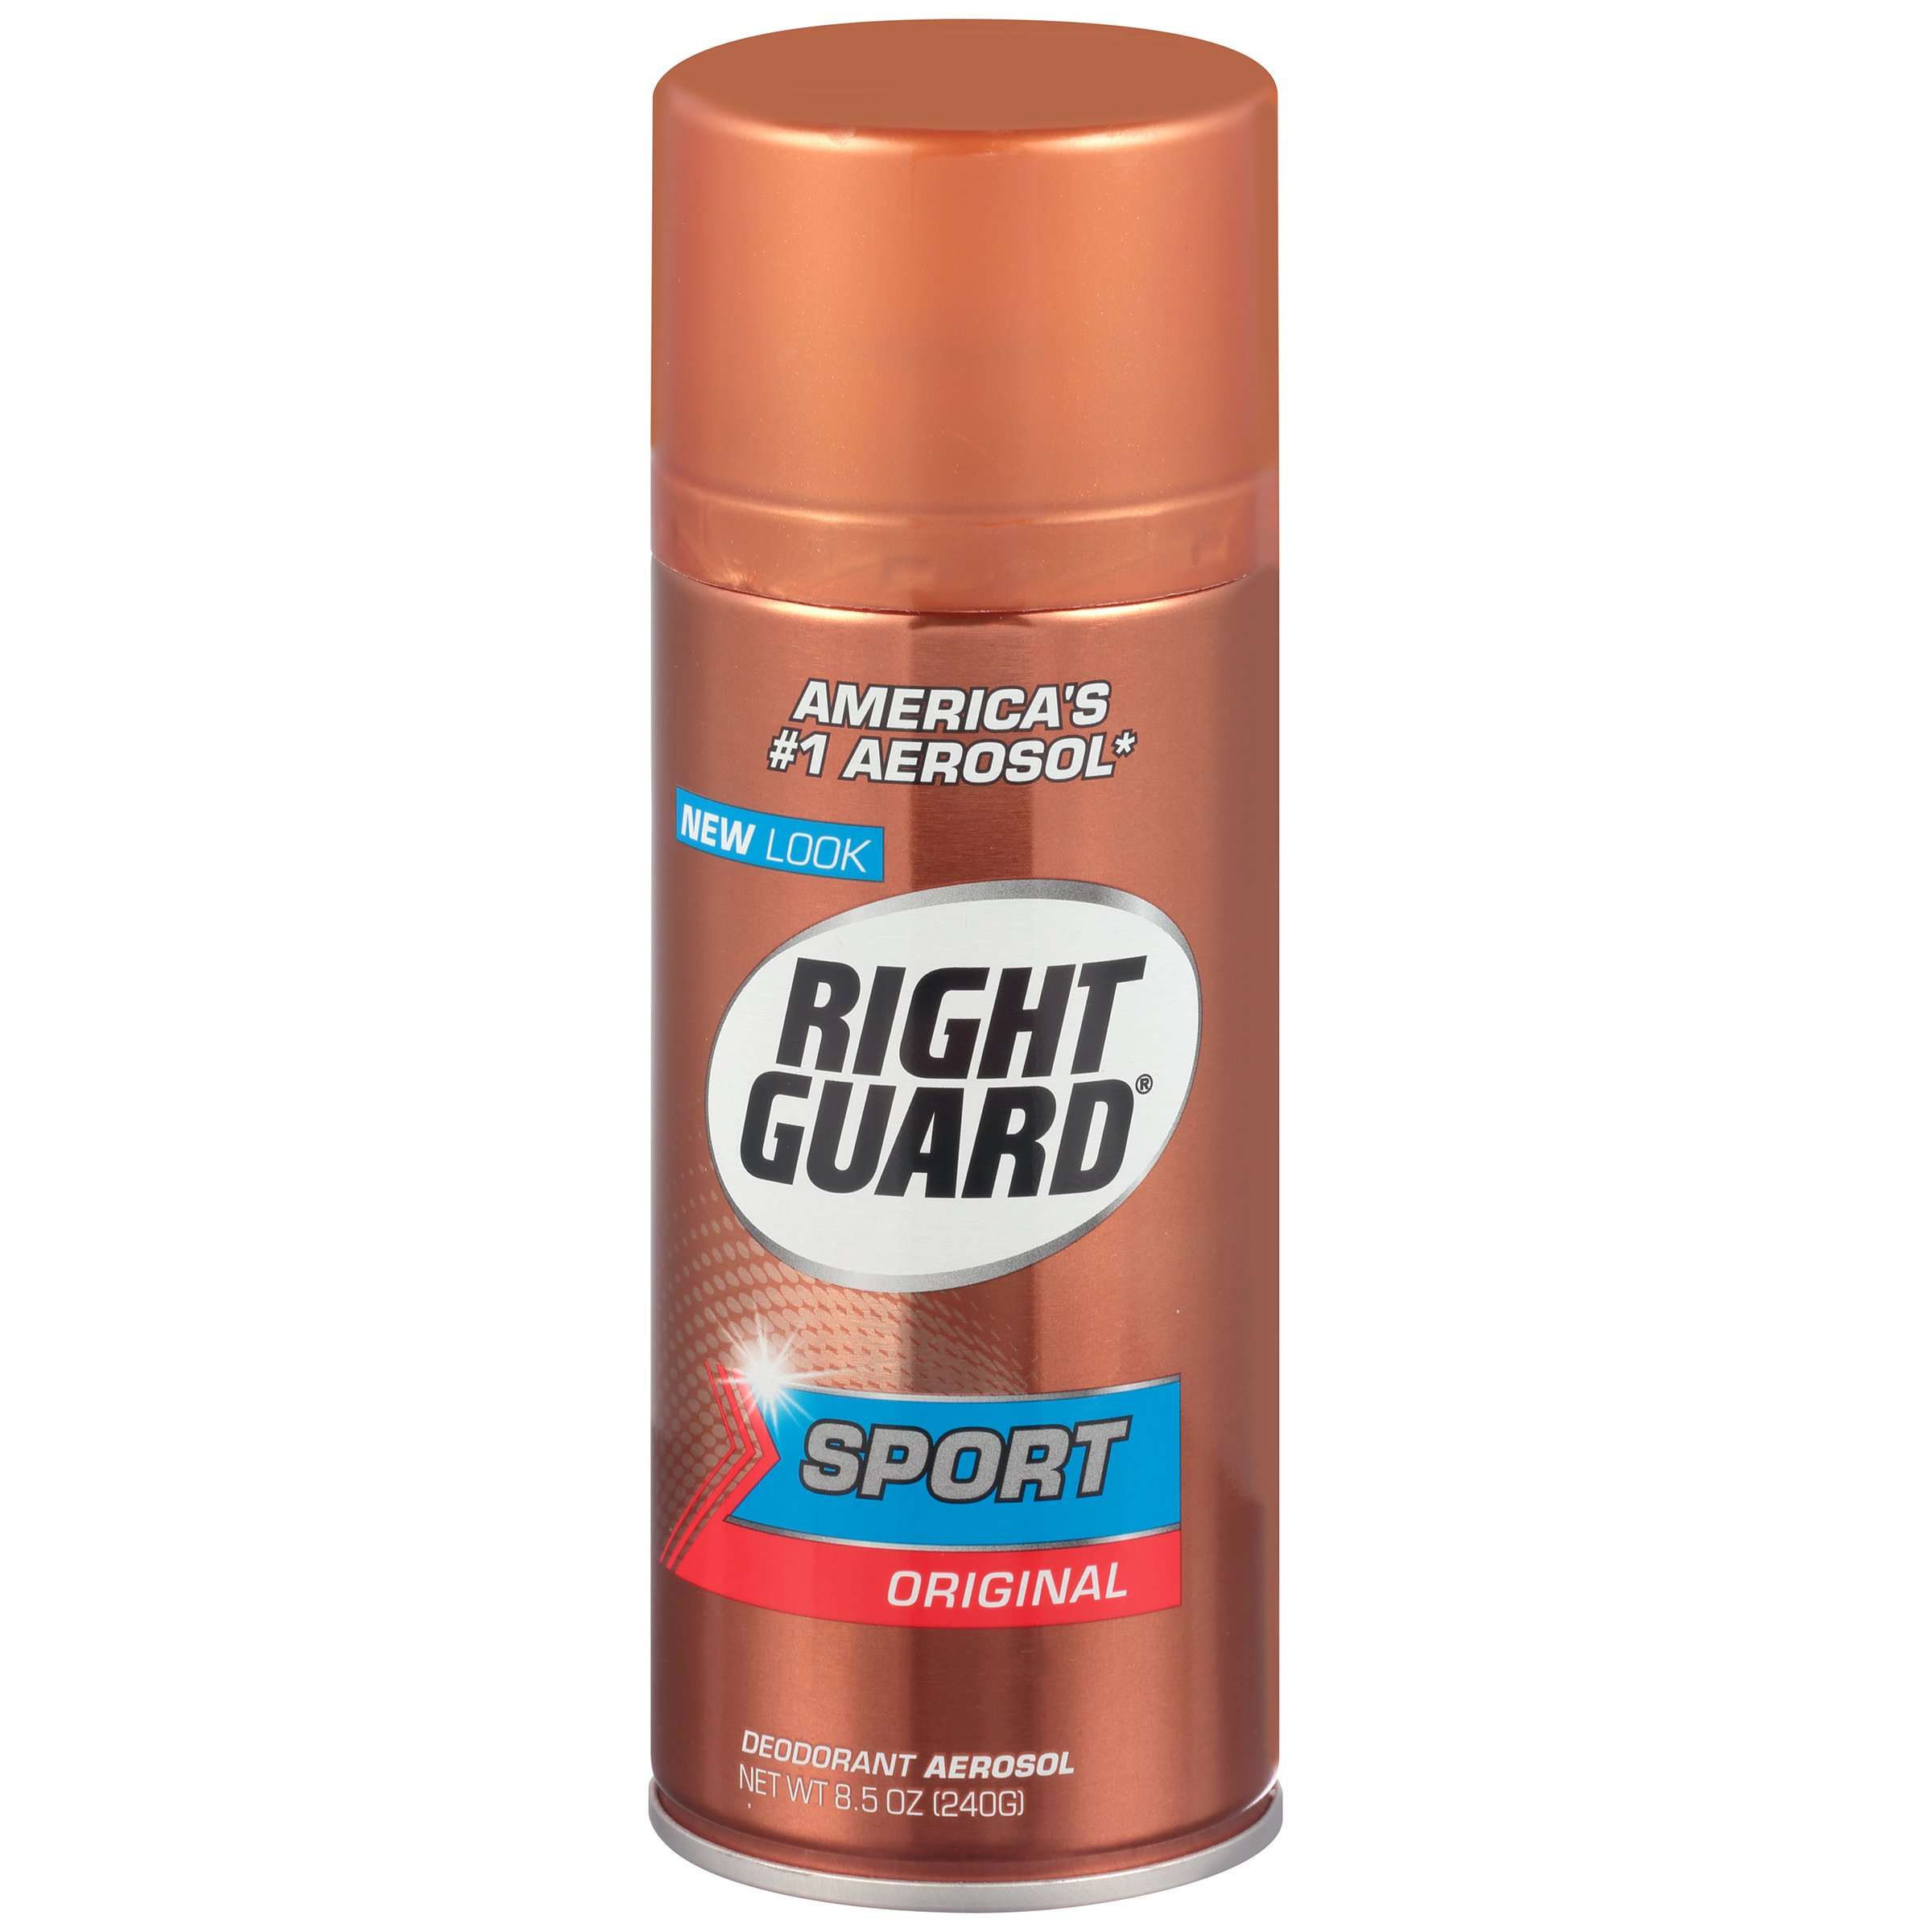 Right Guard Sport Deodorant, Aerosol, Original 8.5 oz (Pack of 8) by Right Guard